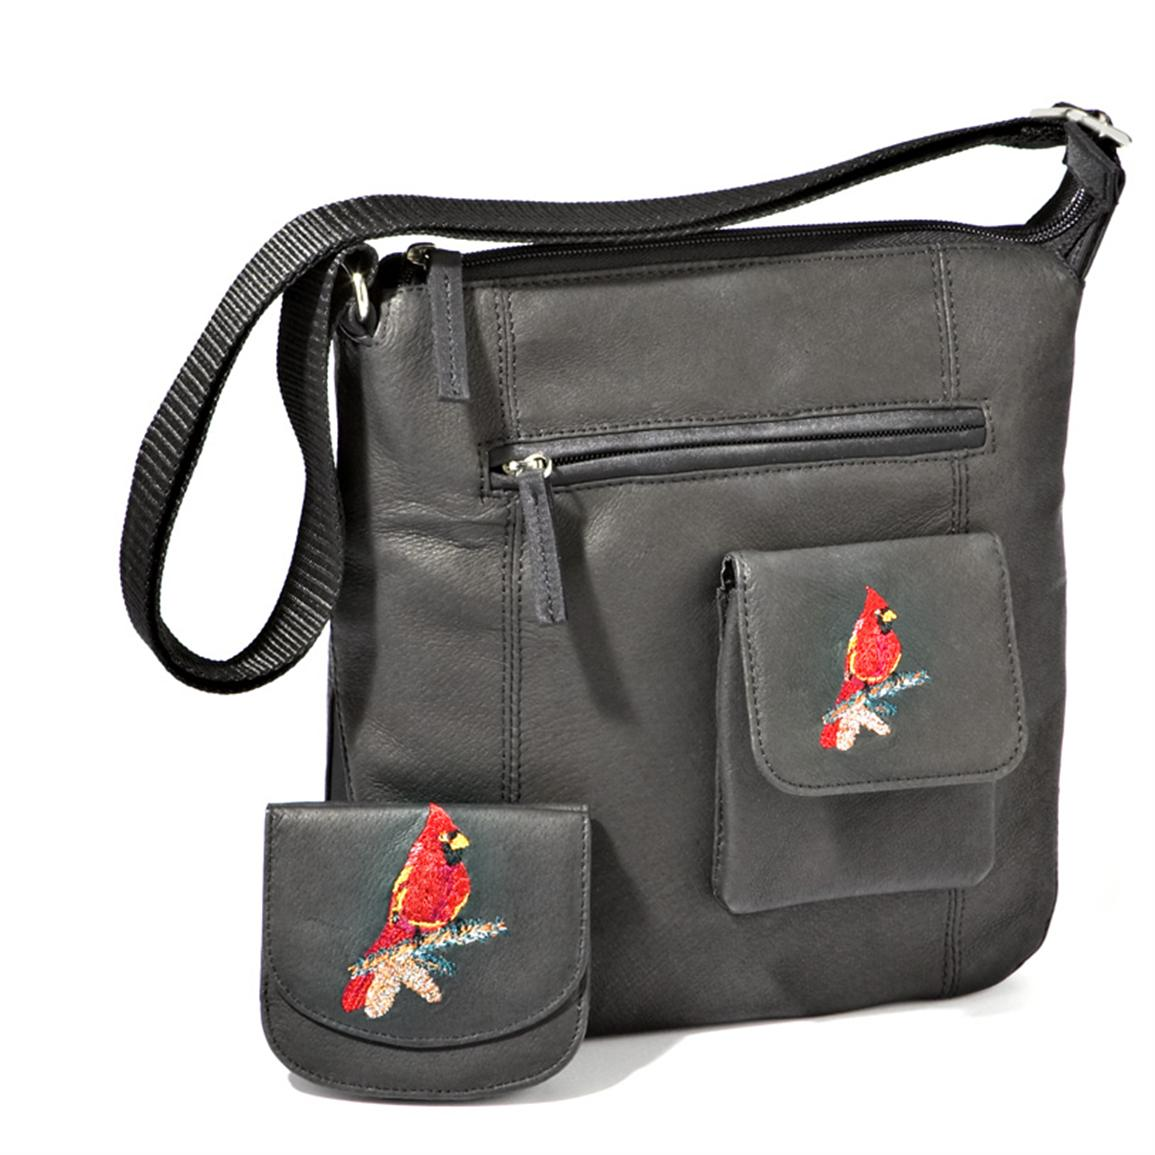 Kingport® Embroidered Cardinal Flat Sack with Small Wallet